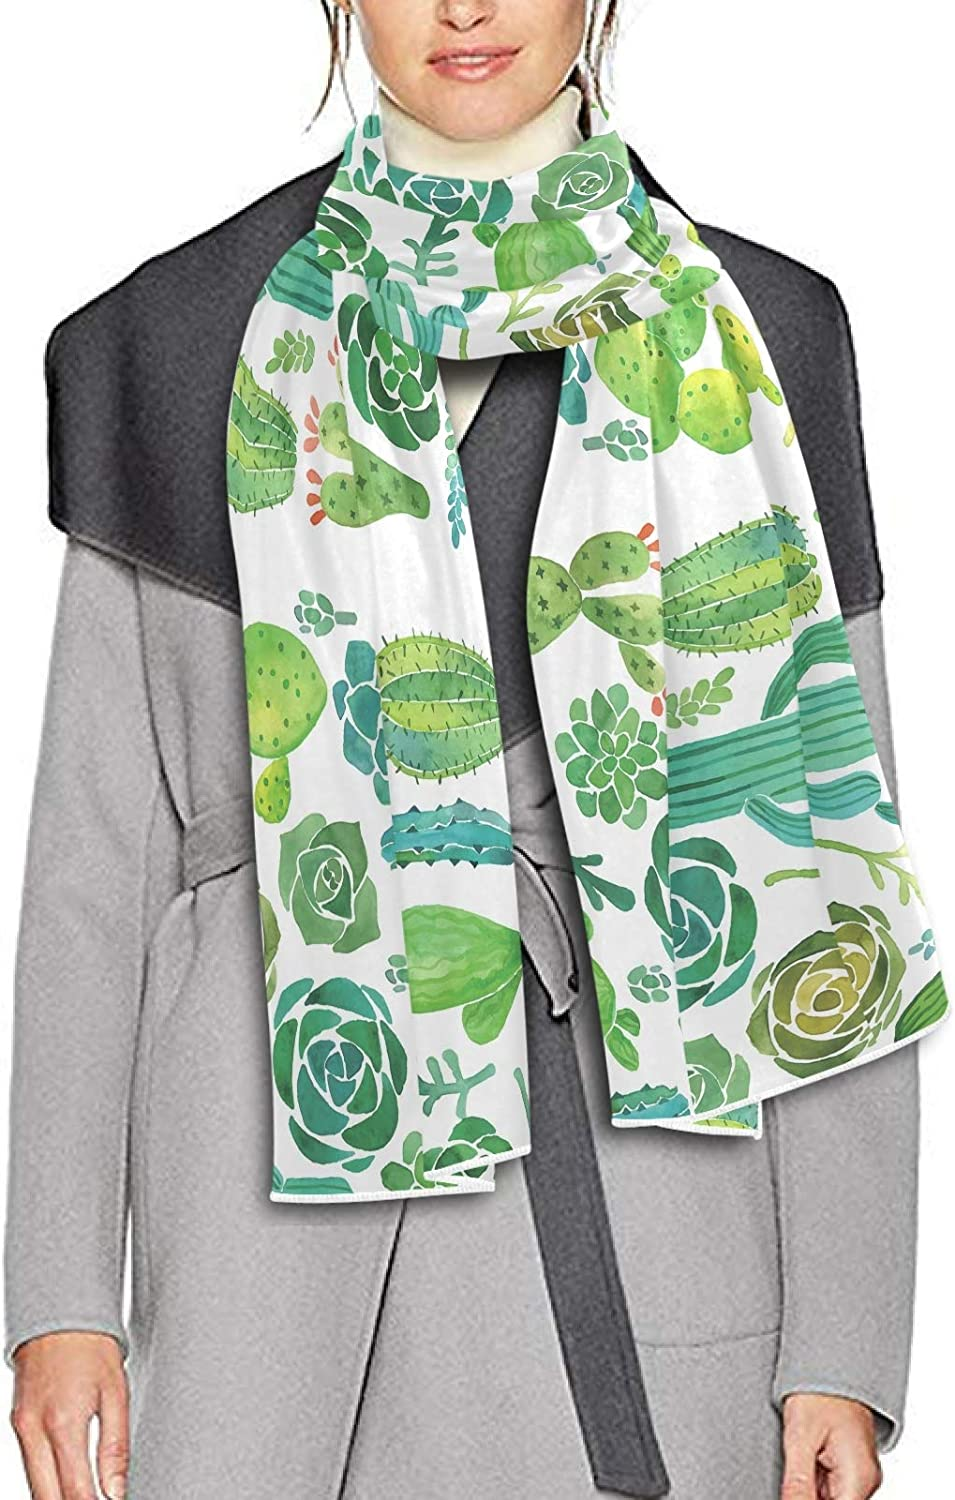 Scarf for Women and Men Flowers Leaves Cactus Blanket Shawl Scarf wraps Warm soft Winter Oversized Scarves Lightweight